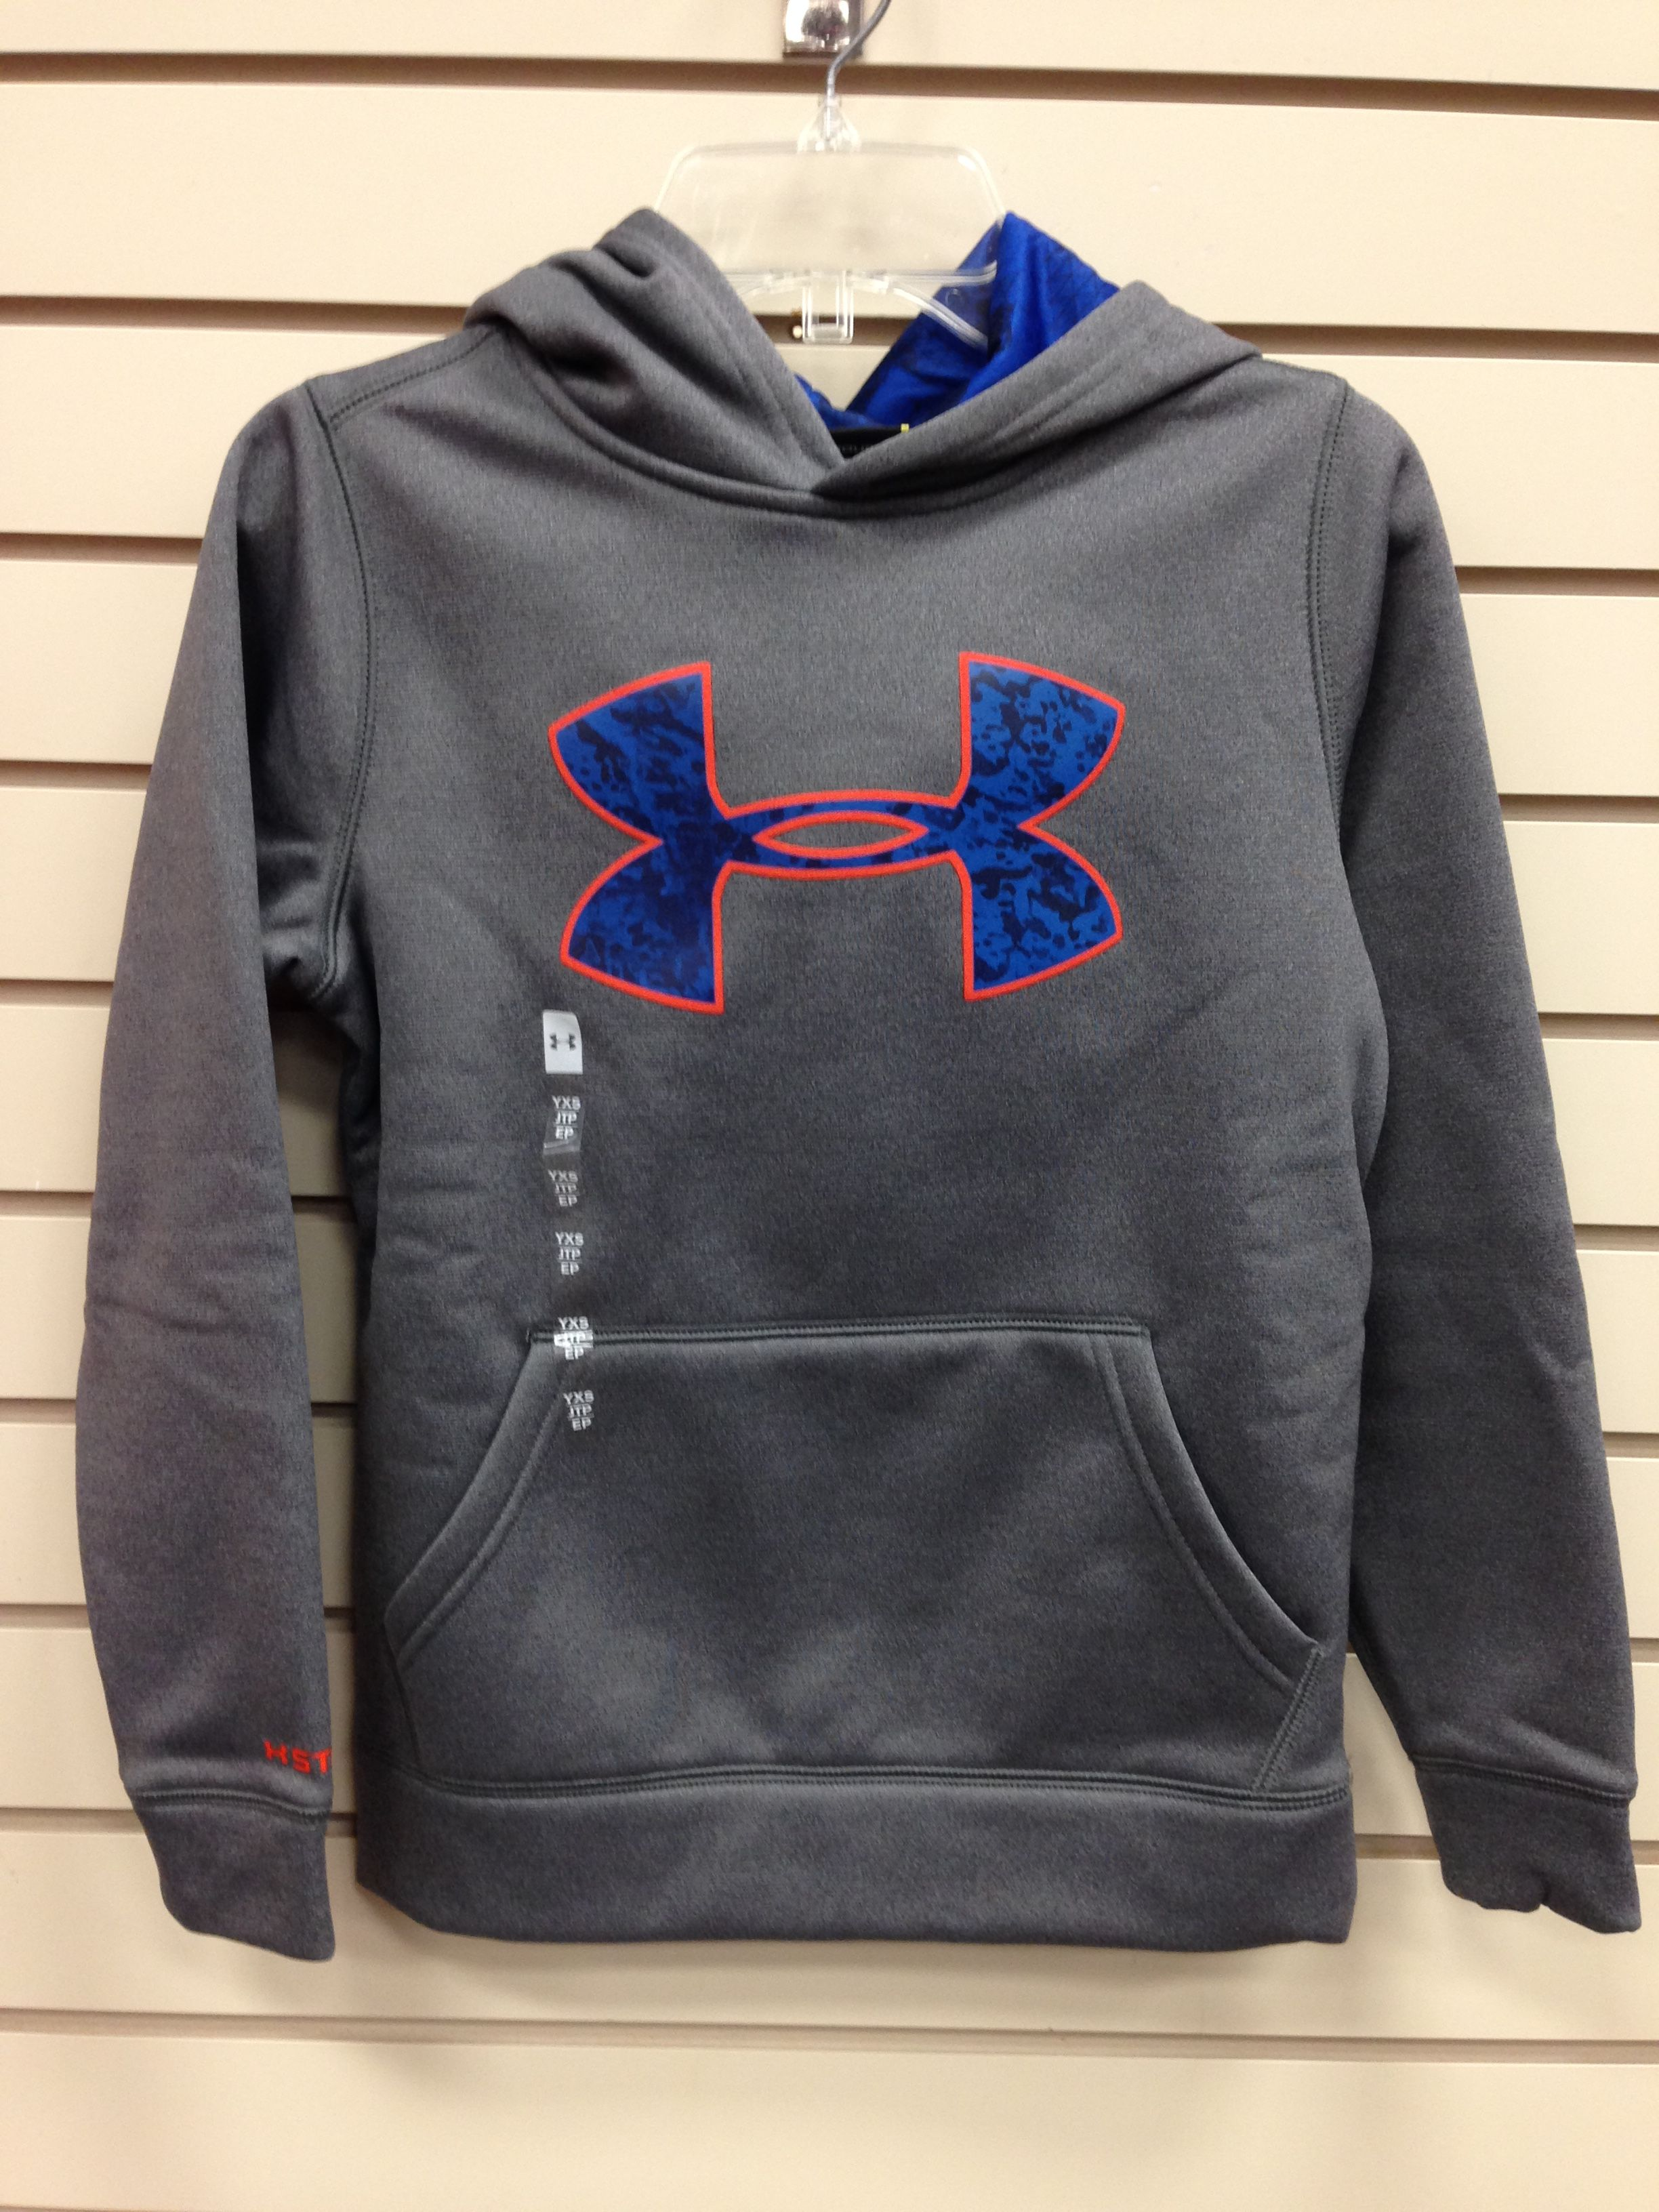 under armour youth hoodie. youth under armour sweatshirt, gray and blue hoodie